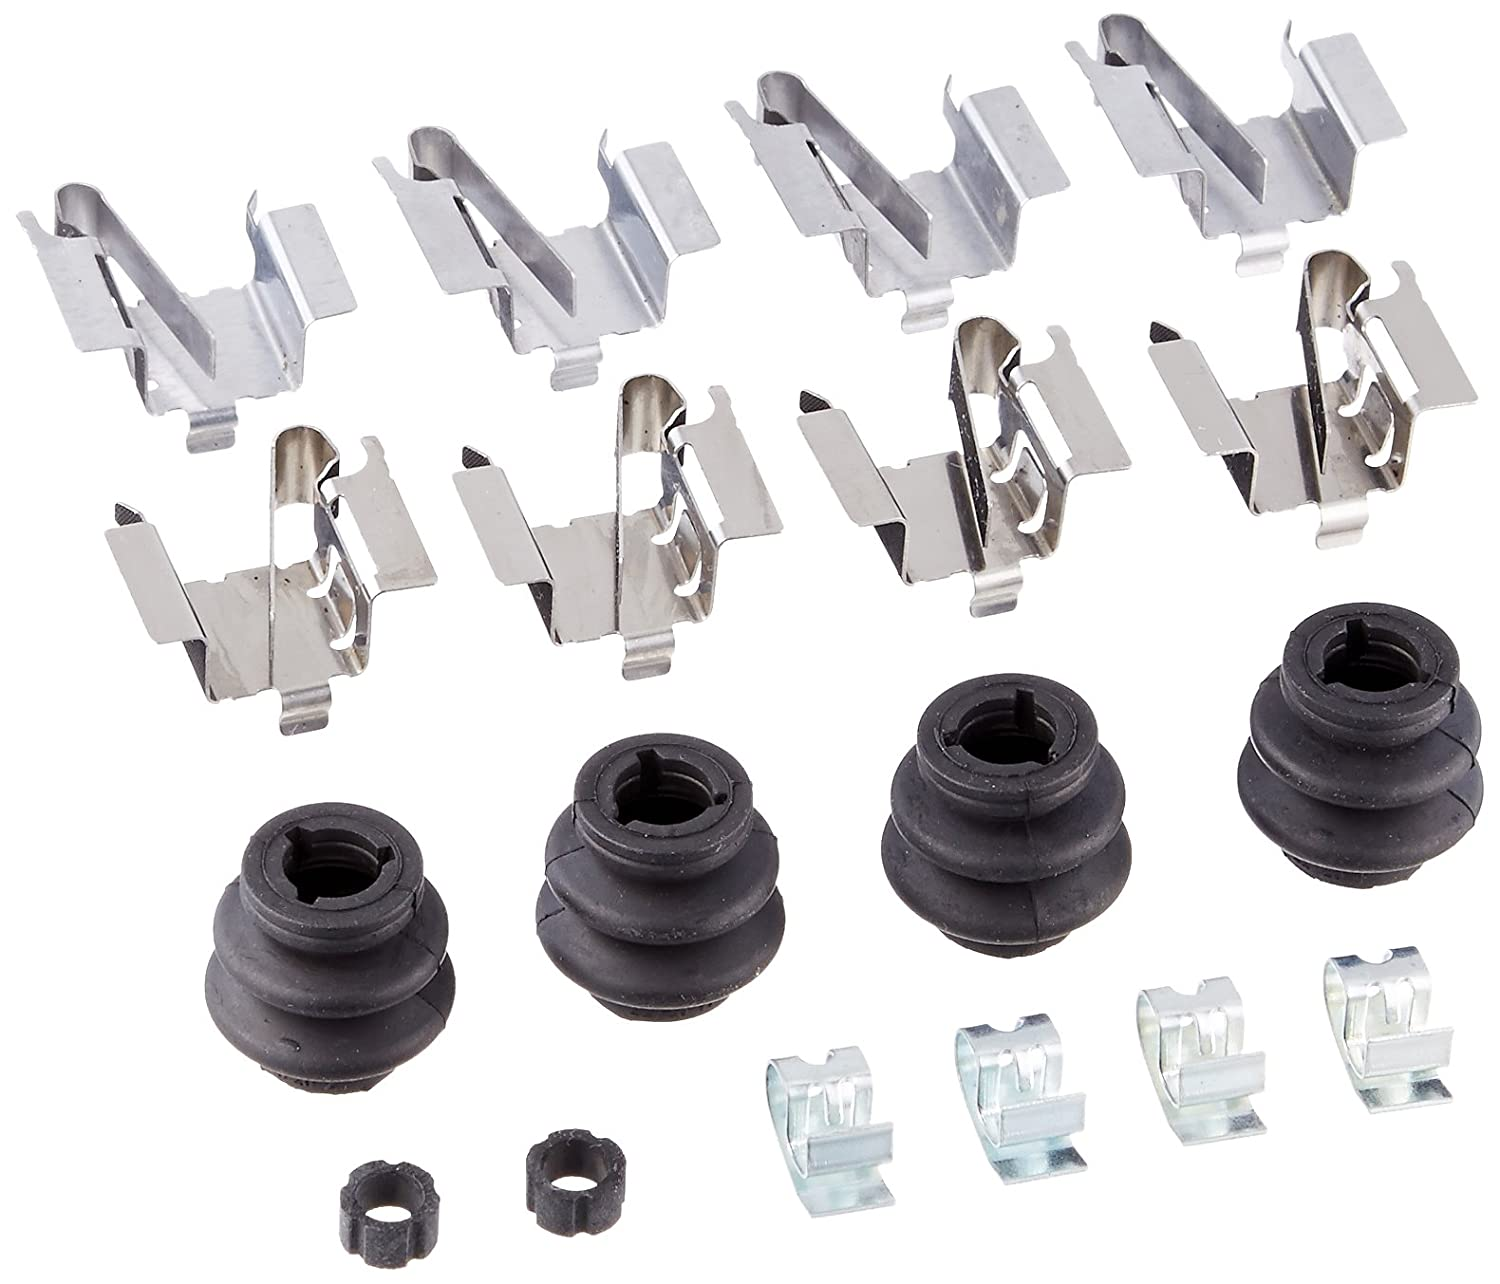 Carlson 13571Q Rear Disc Brake Hardware Kit Carlson (CASZC)